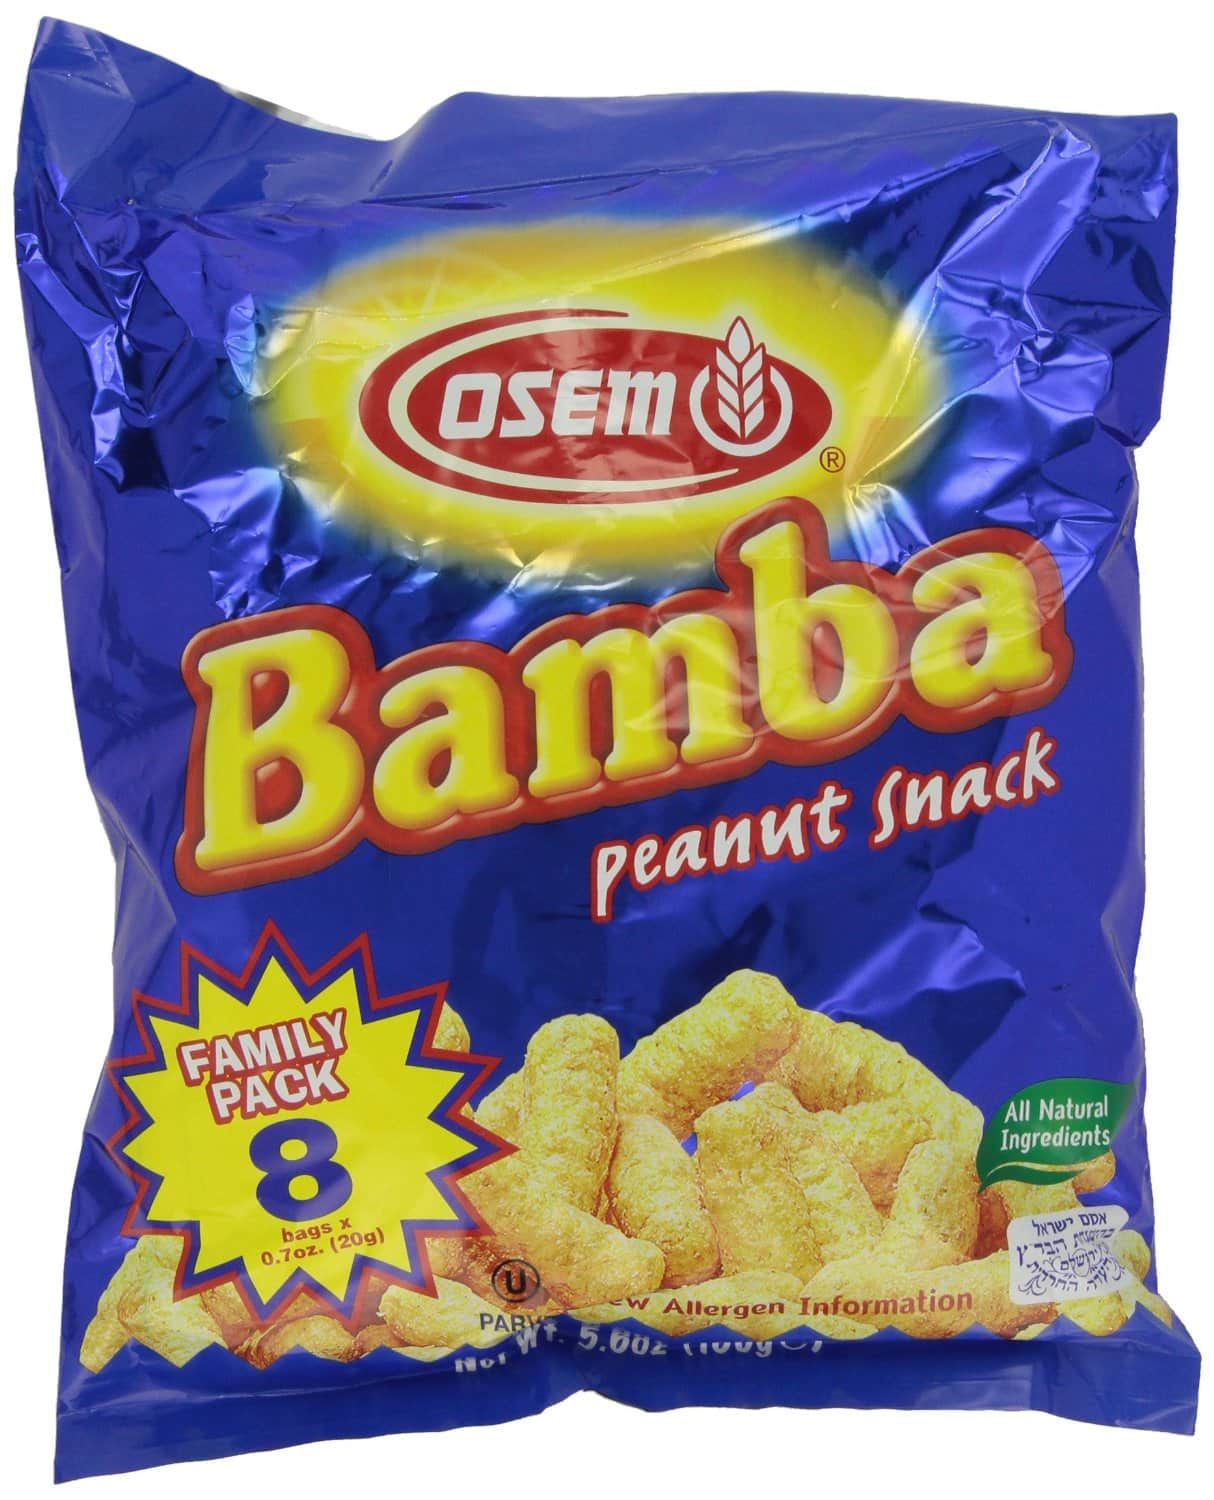 Bamba Peanut Snack 8 pack (0.7oz bags)   $2.21 Amazon S&S